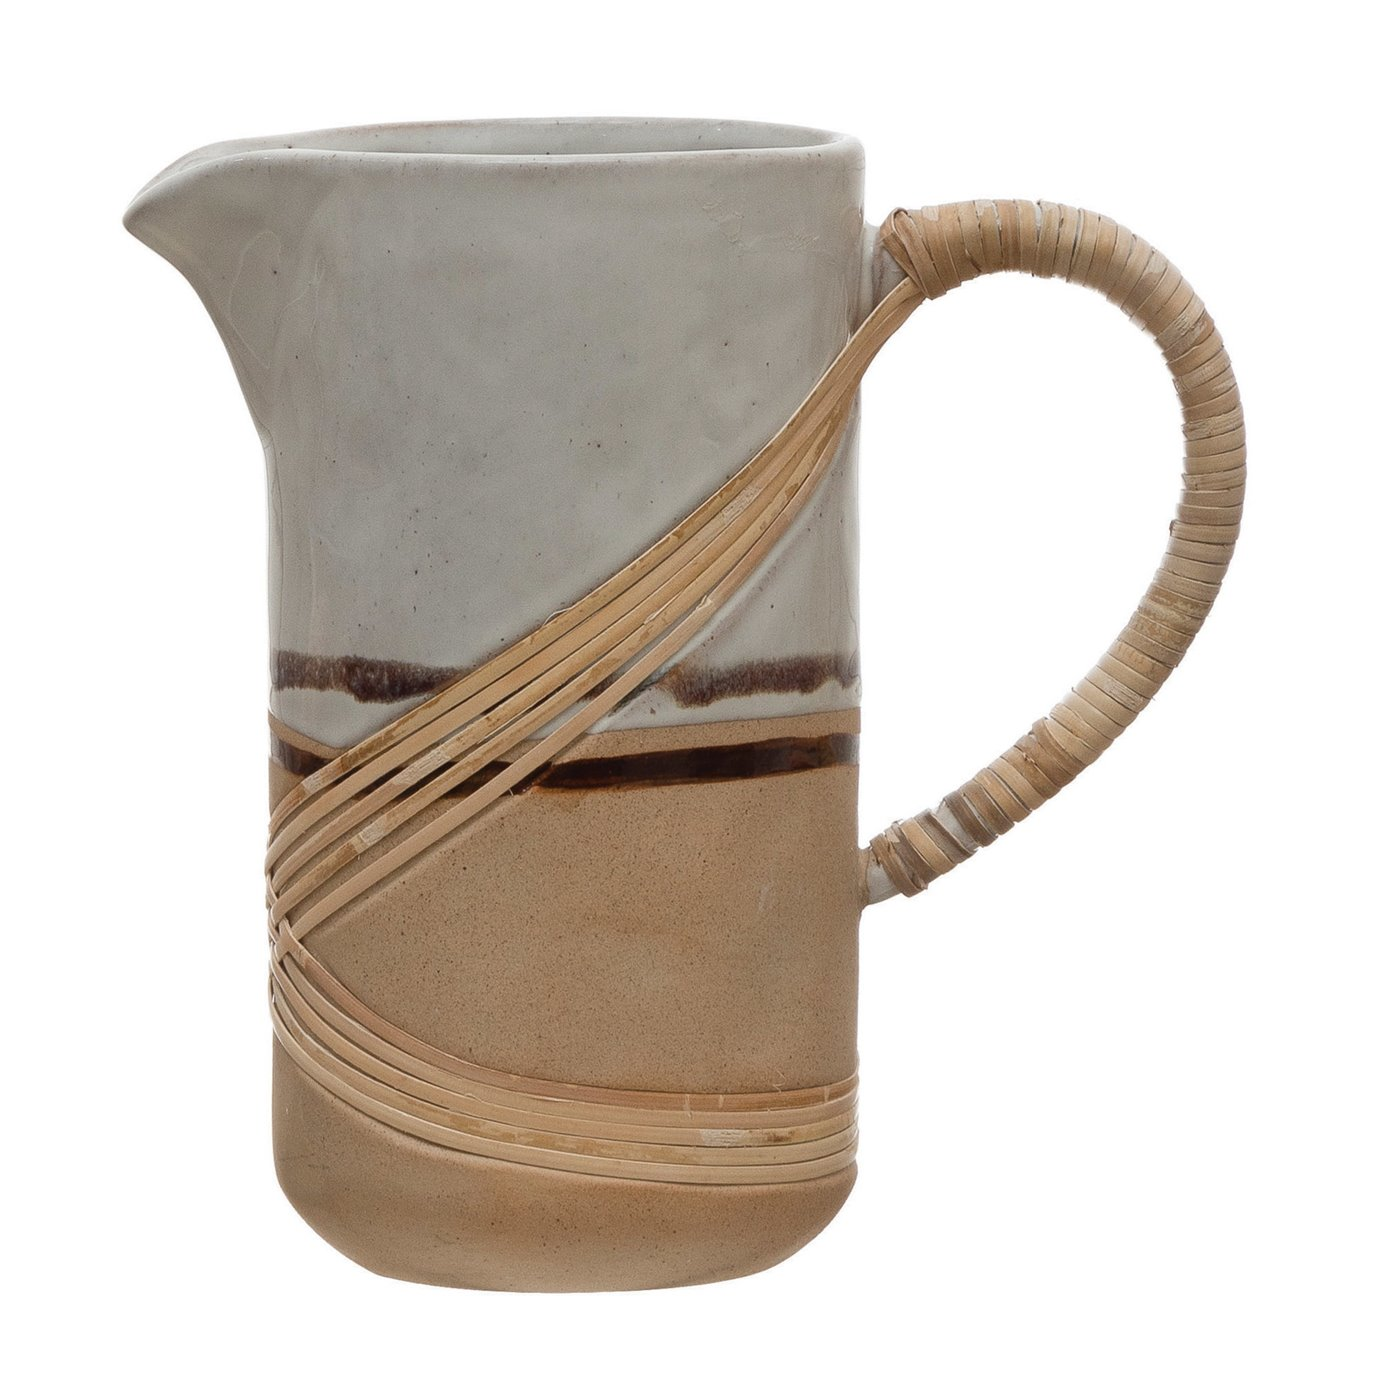 36 oz. Stoneware Pitcher with Rattan Wrapped Handle, Reactive Glaze, White & Brown (Each One Will Vary)